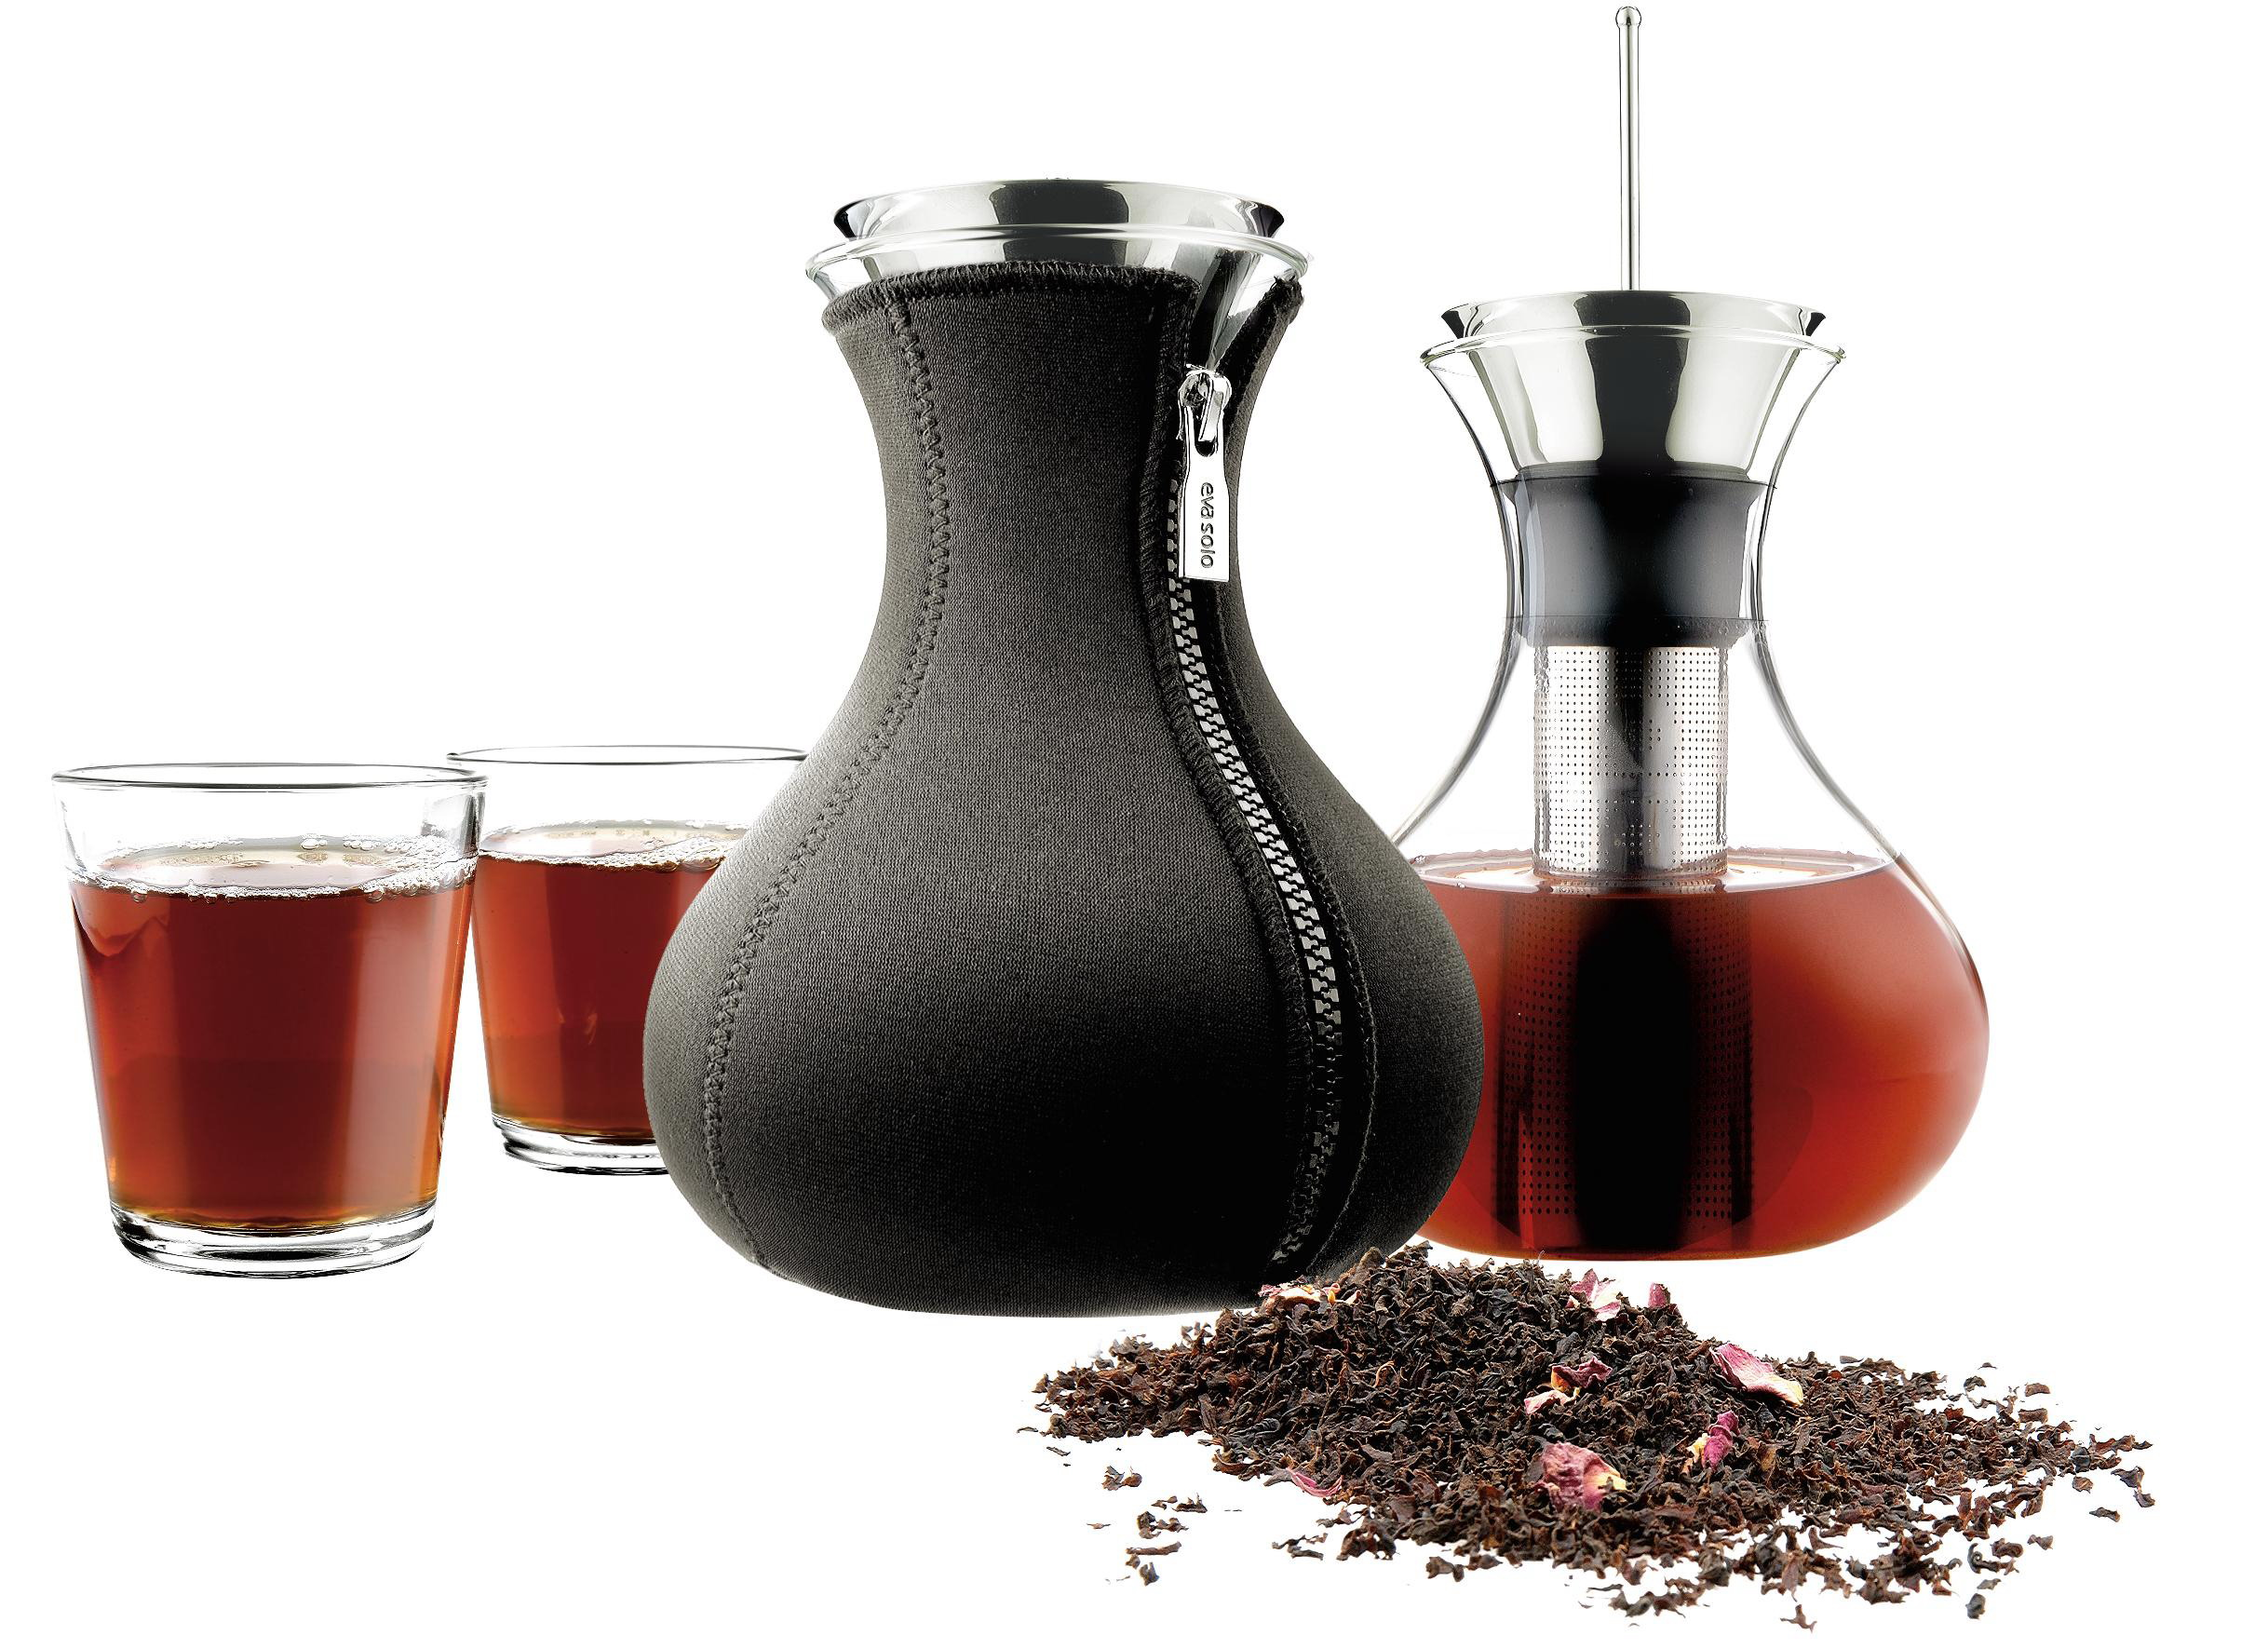 Tea Maker Latest Trends In Home Appliances